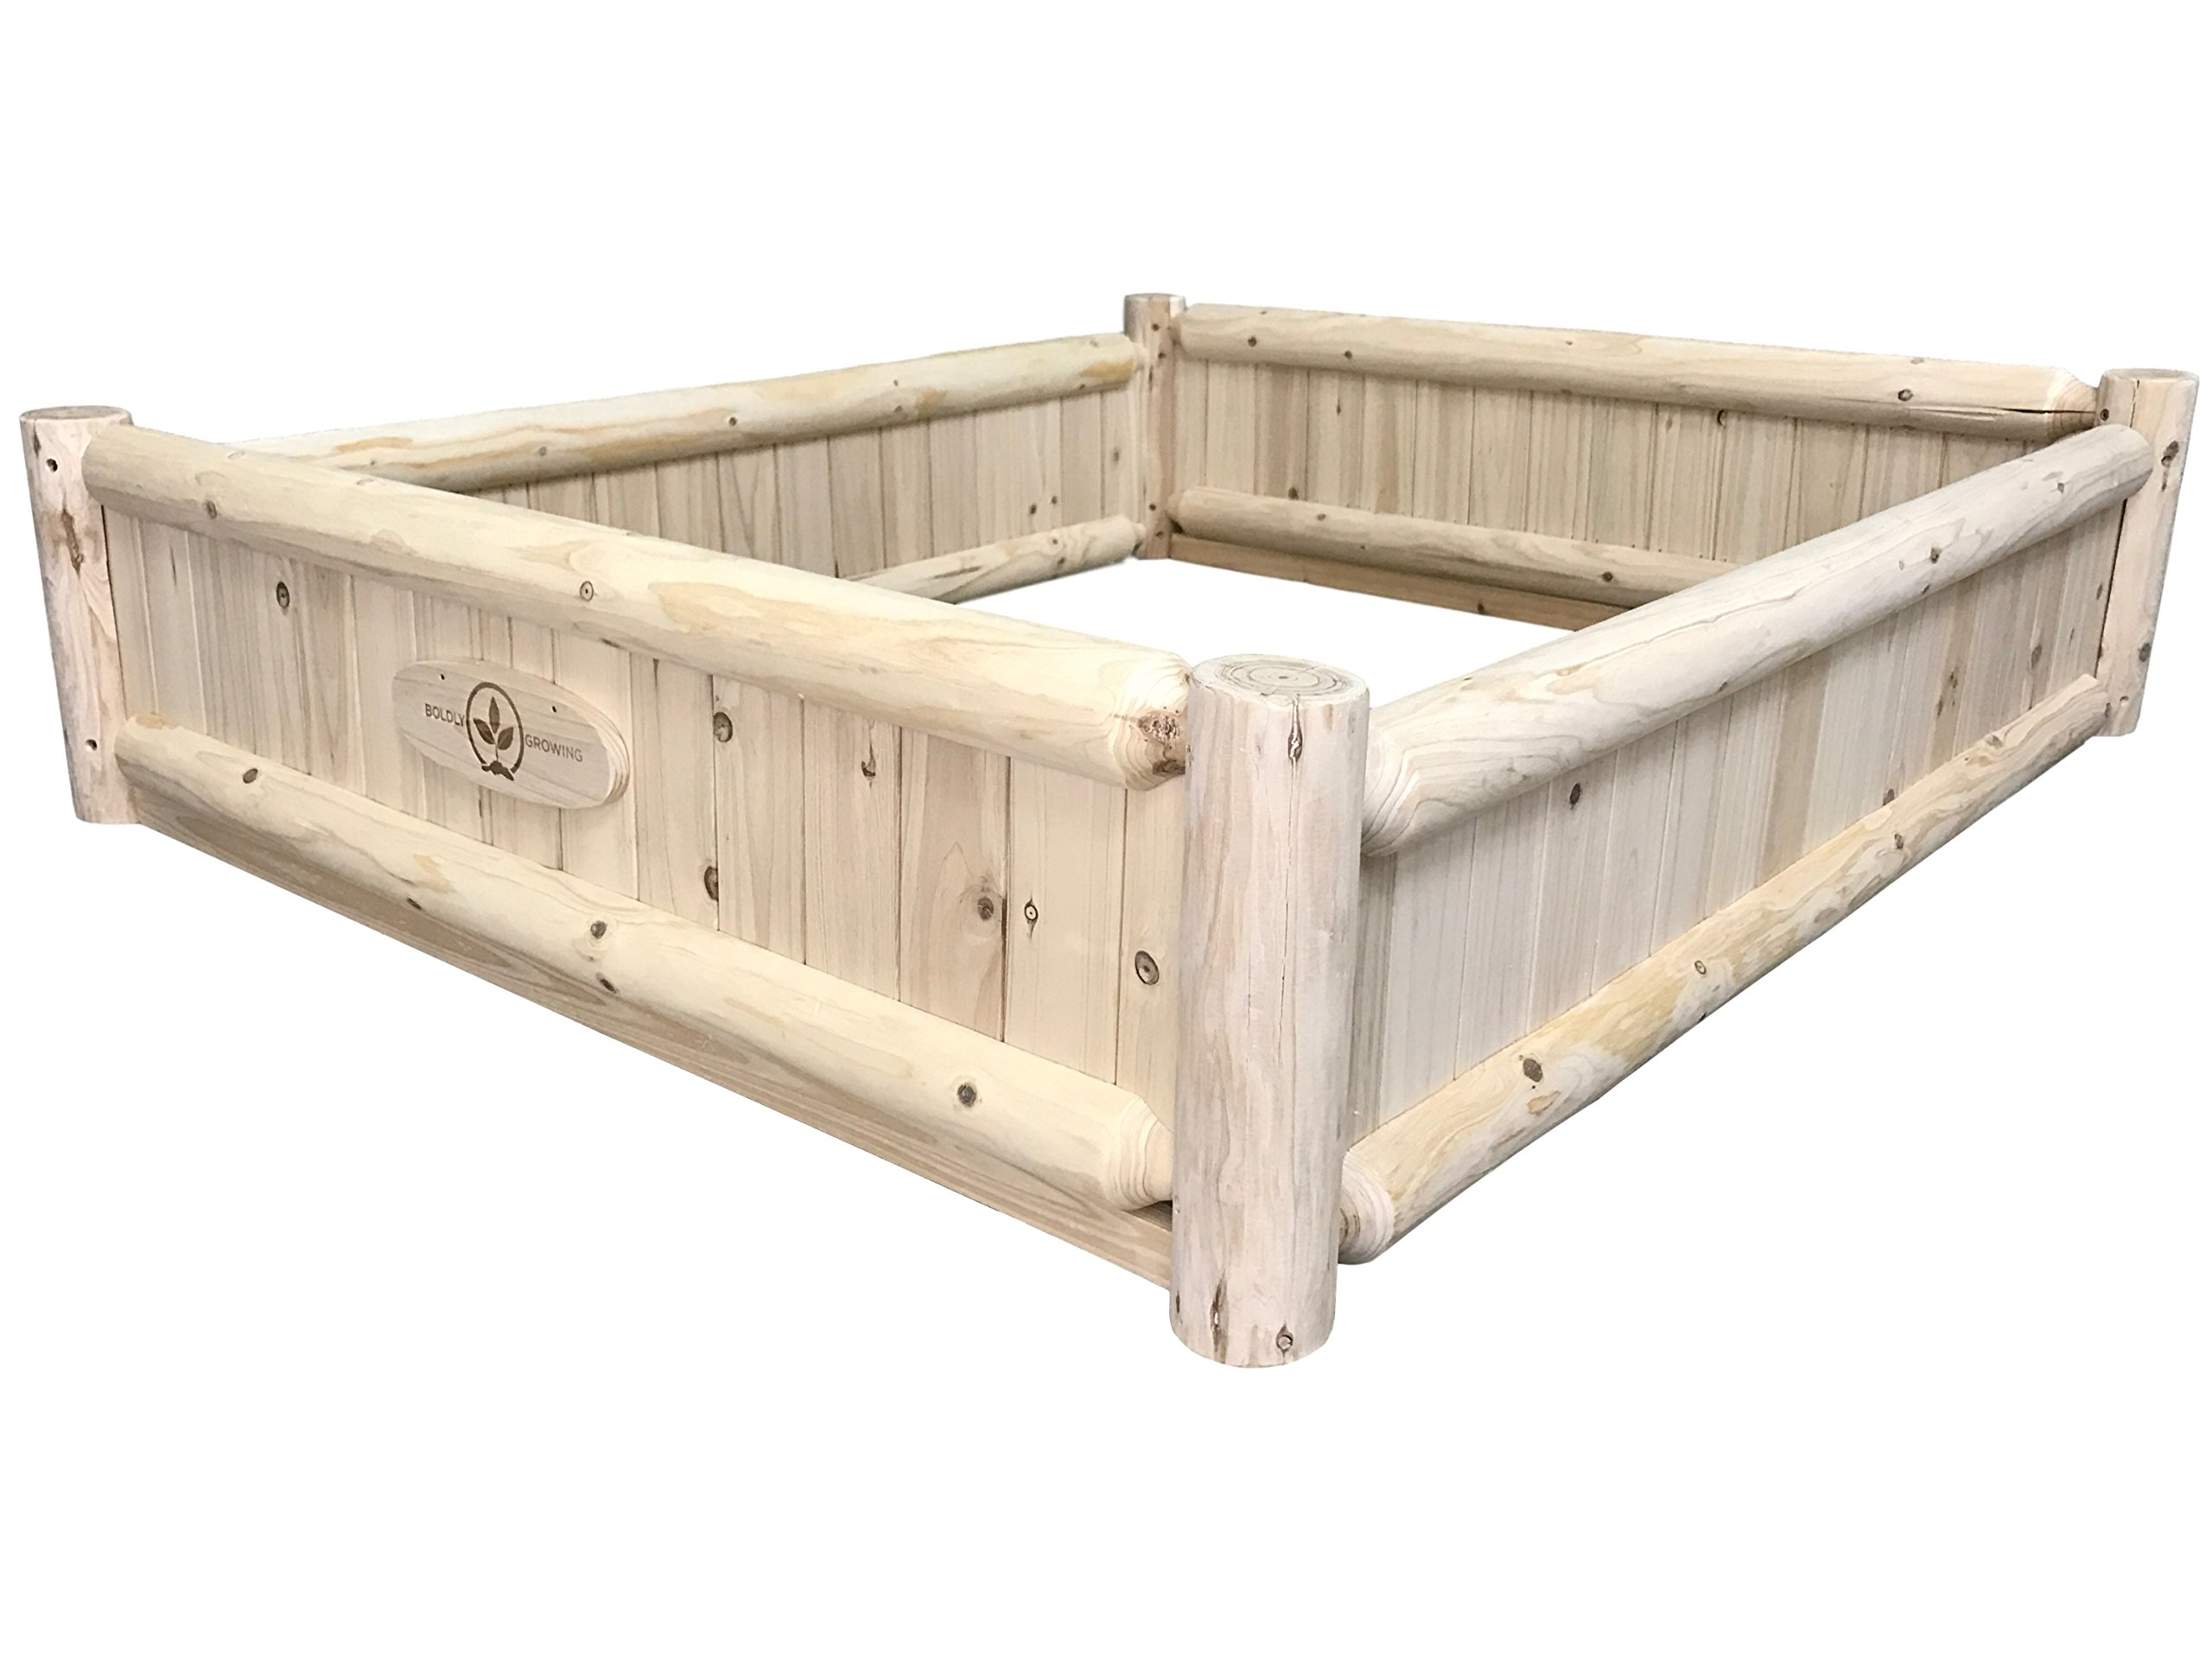 Raised Bed Wood Gardening Box - Starter Kit (3.5 x 4 Feet)